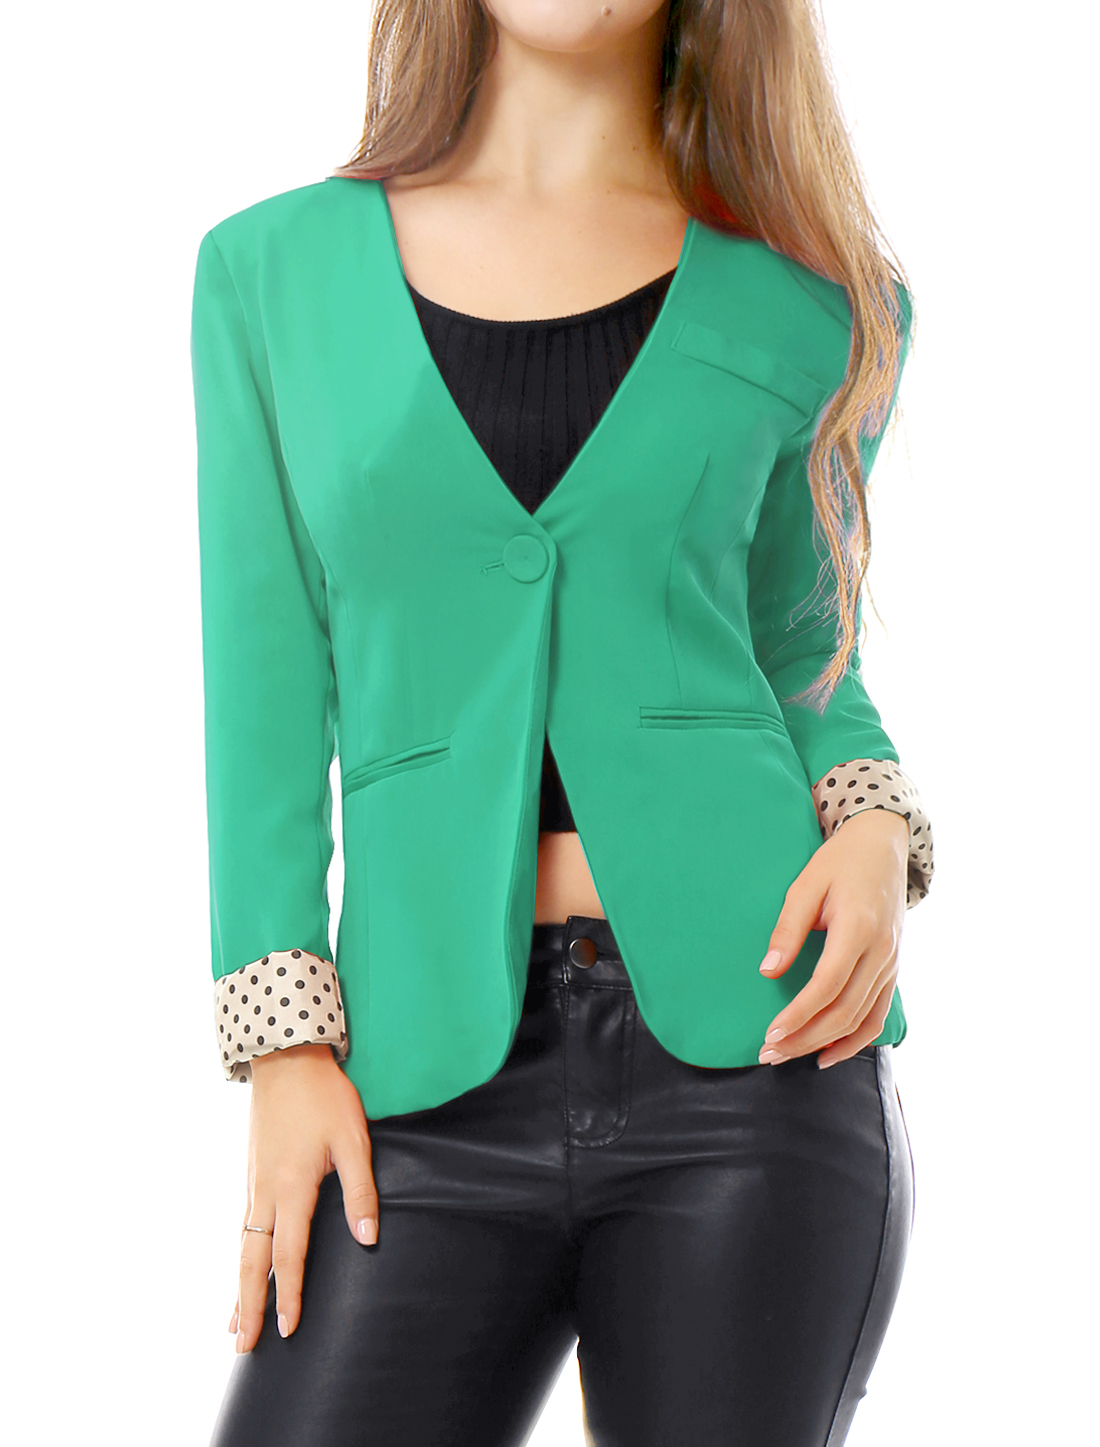 Lady Green Solid Color Deep V Neck Single Button Fastening Simple Leisure Suit M